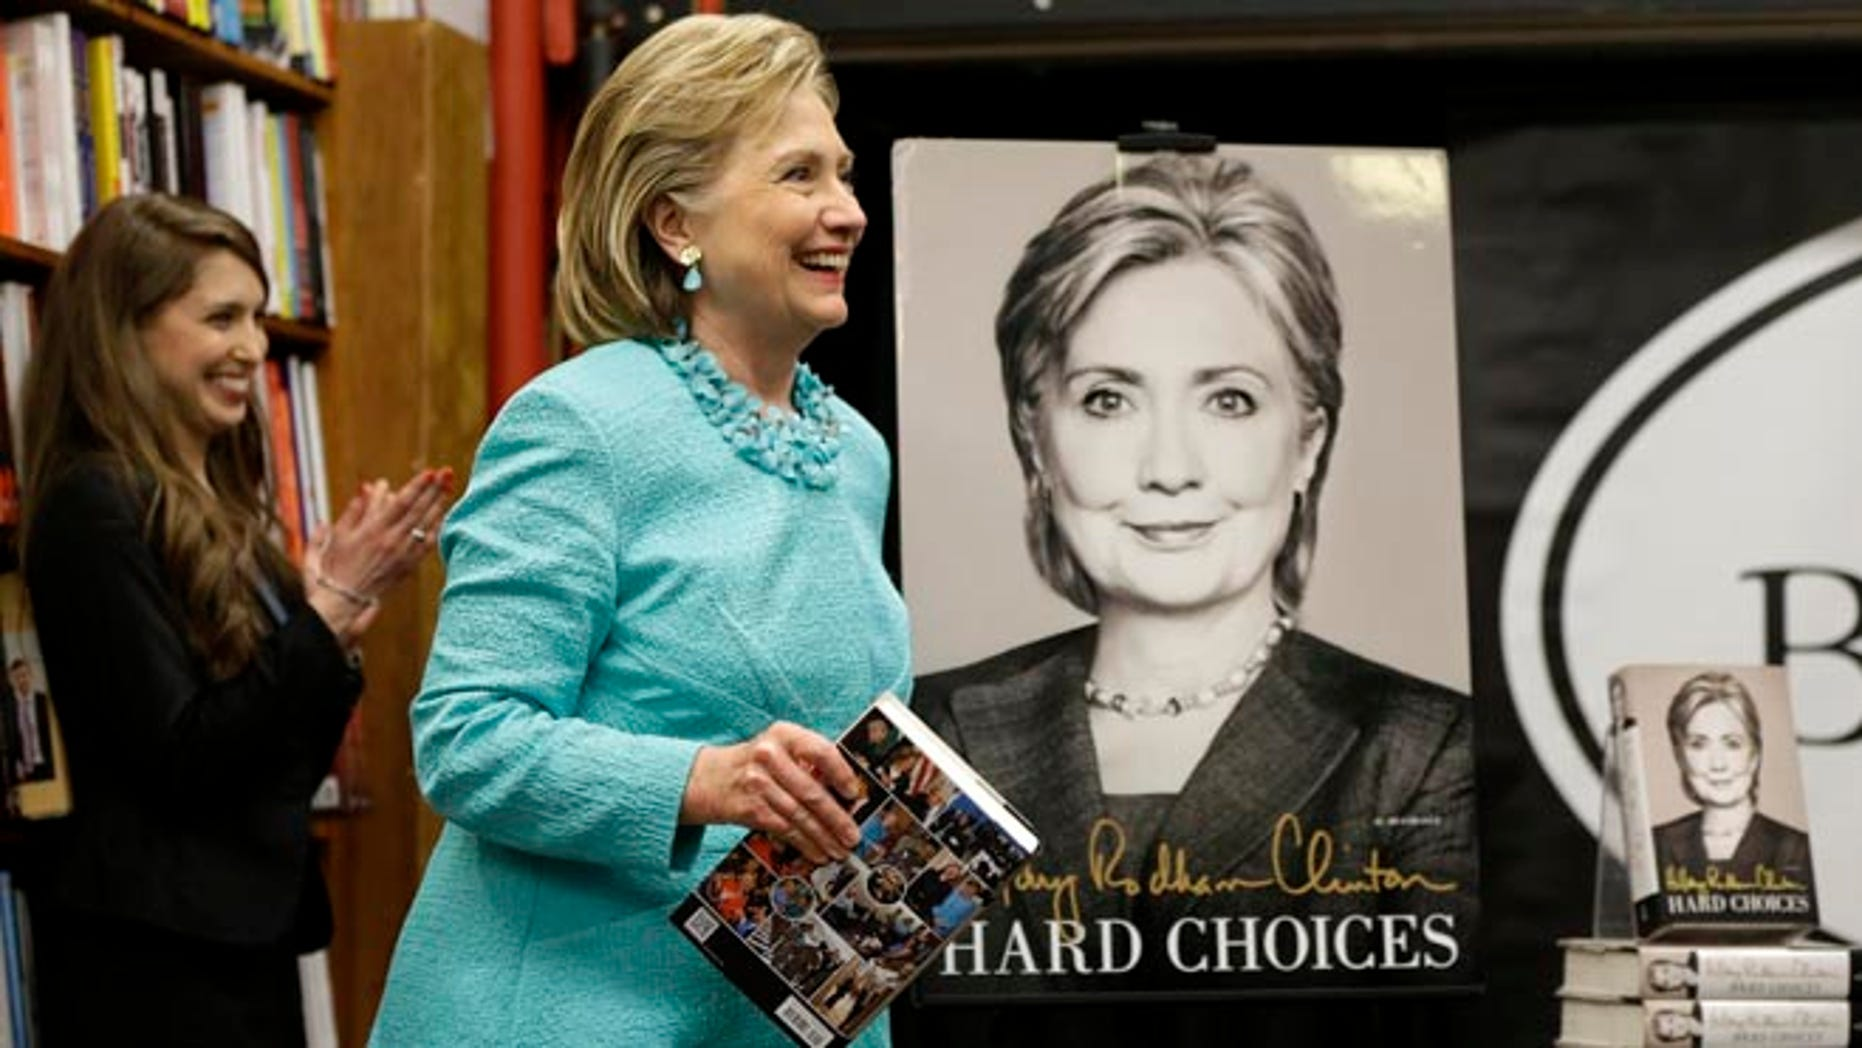 """HiIlary Rodham Clinton at a book signing for her new book """"Hard Choices"""" at Harvard Book Store, Monday, June 16, 2014, in Cambridge, Mass."""